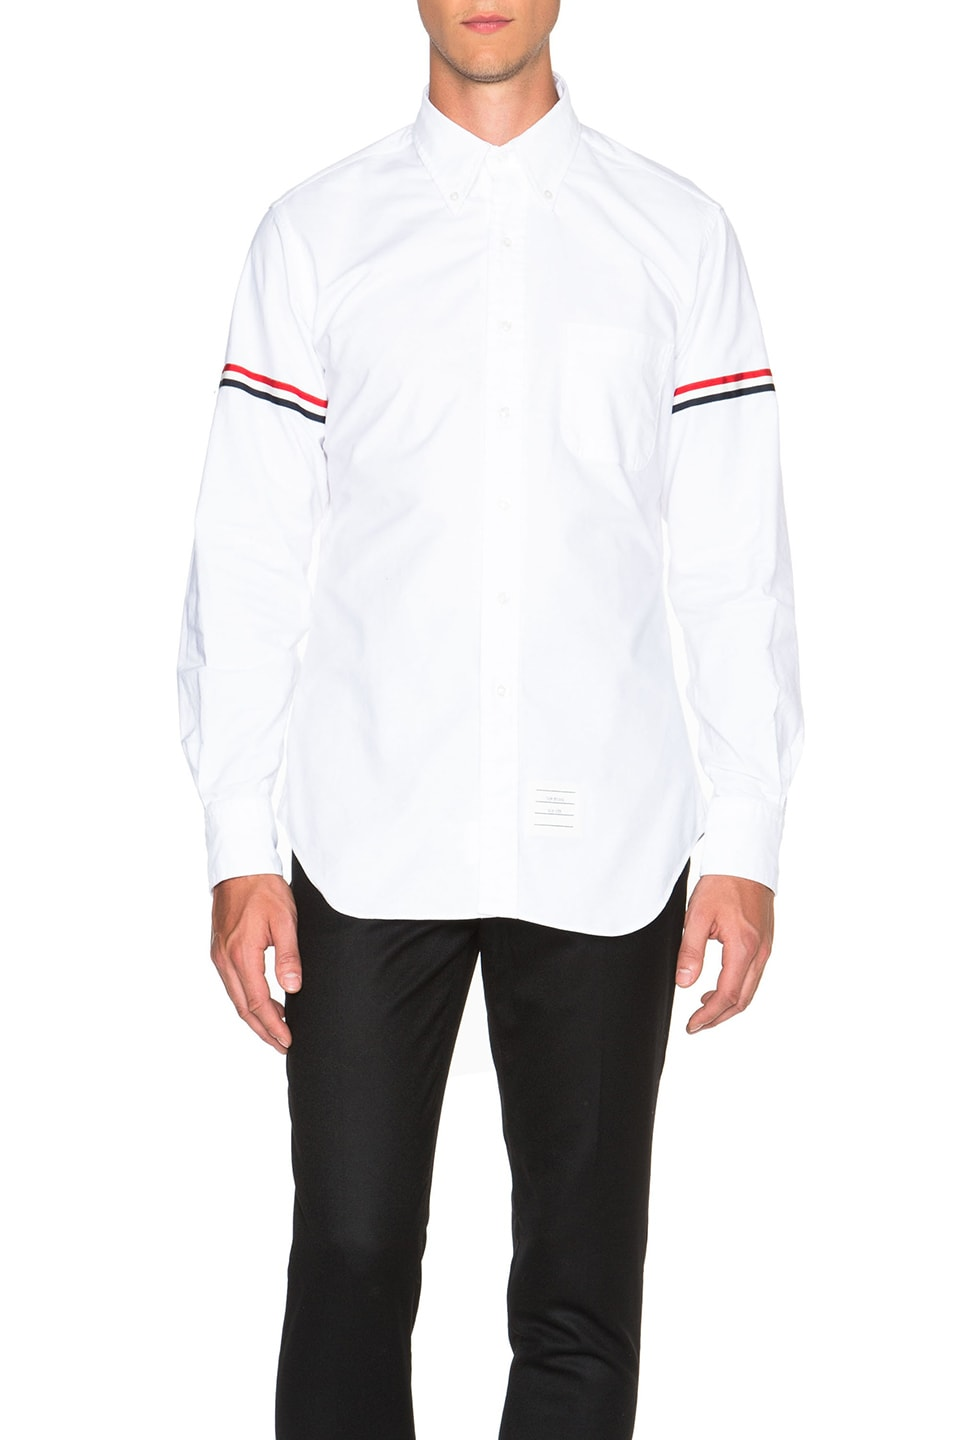 THOM BROWNE Long Sleeve Shirt With Grosgrain Armbands In White Oxford